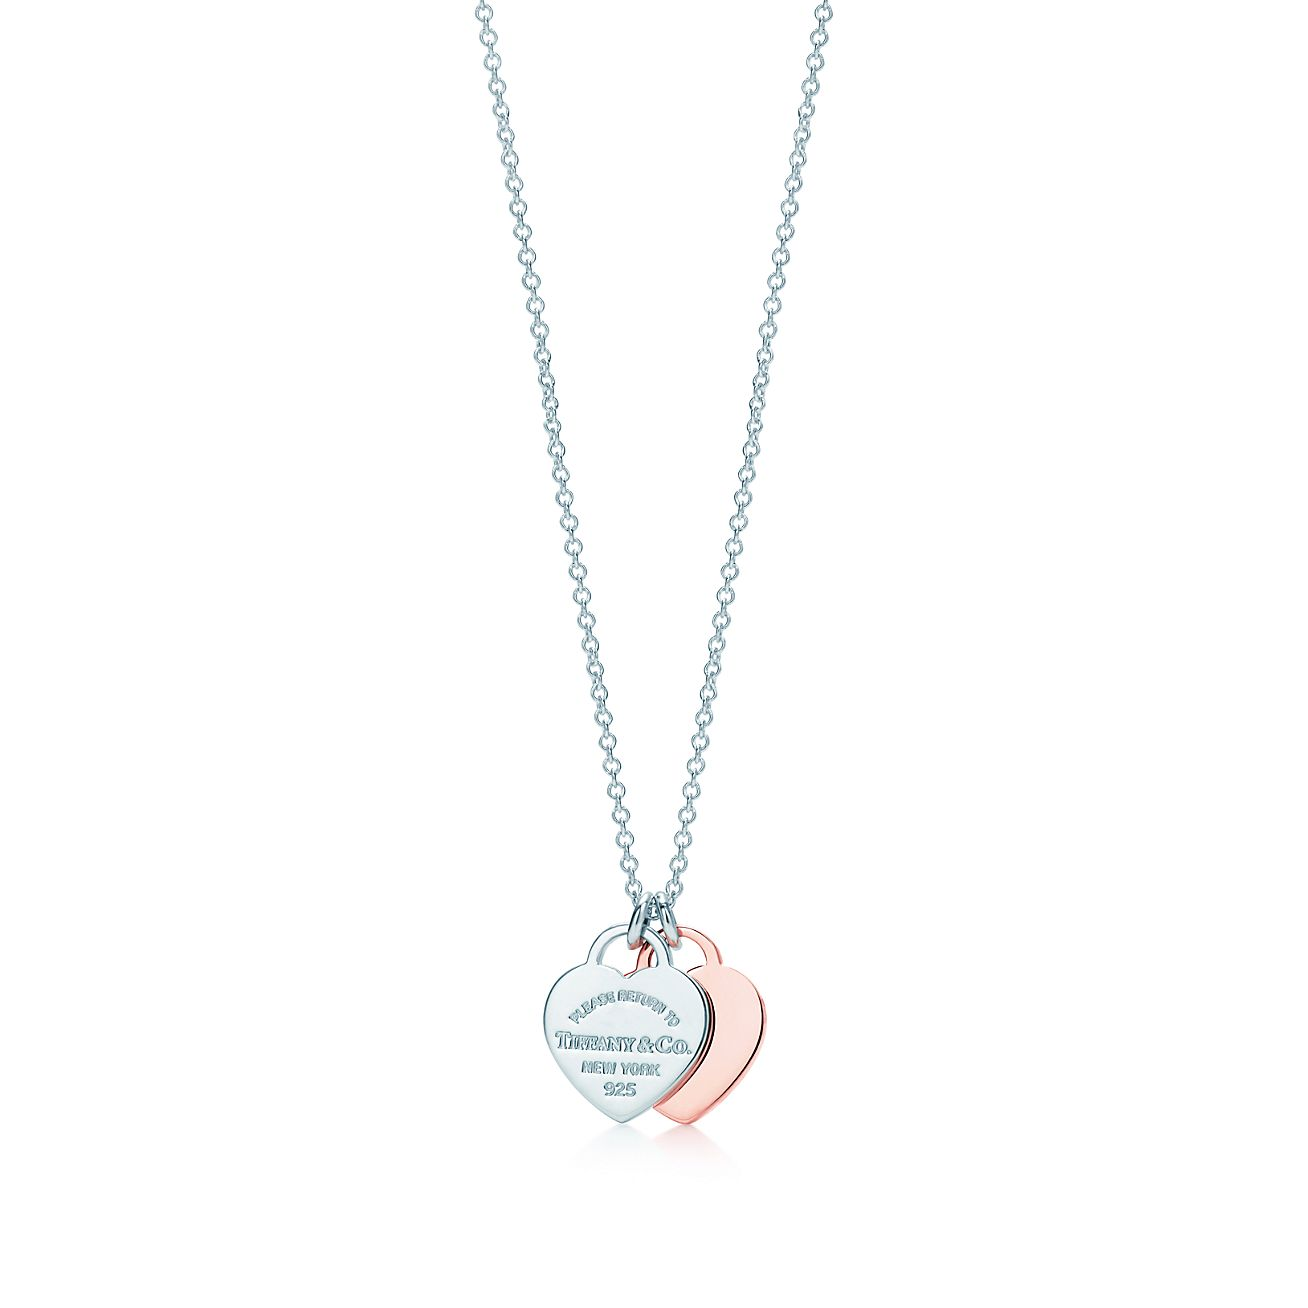 Return to Tiffany double heart pendant in Rubedo metal and silver, mini Tiffany & Co.